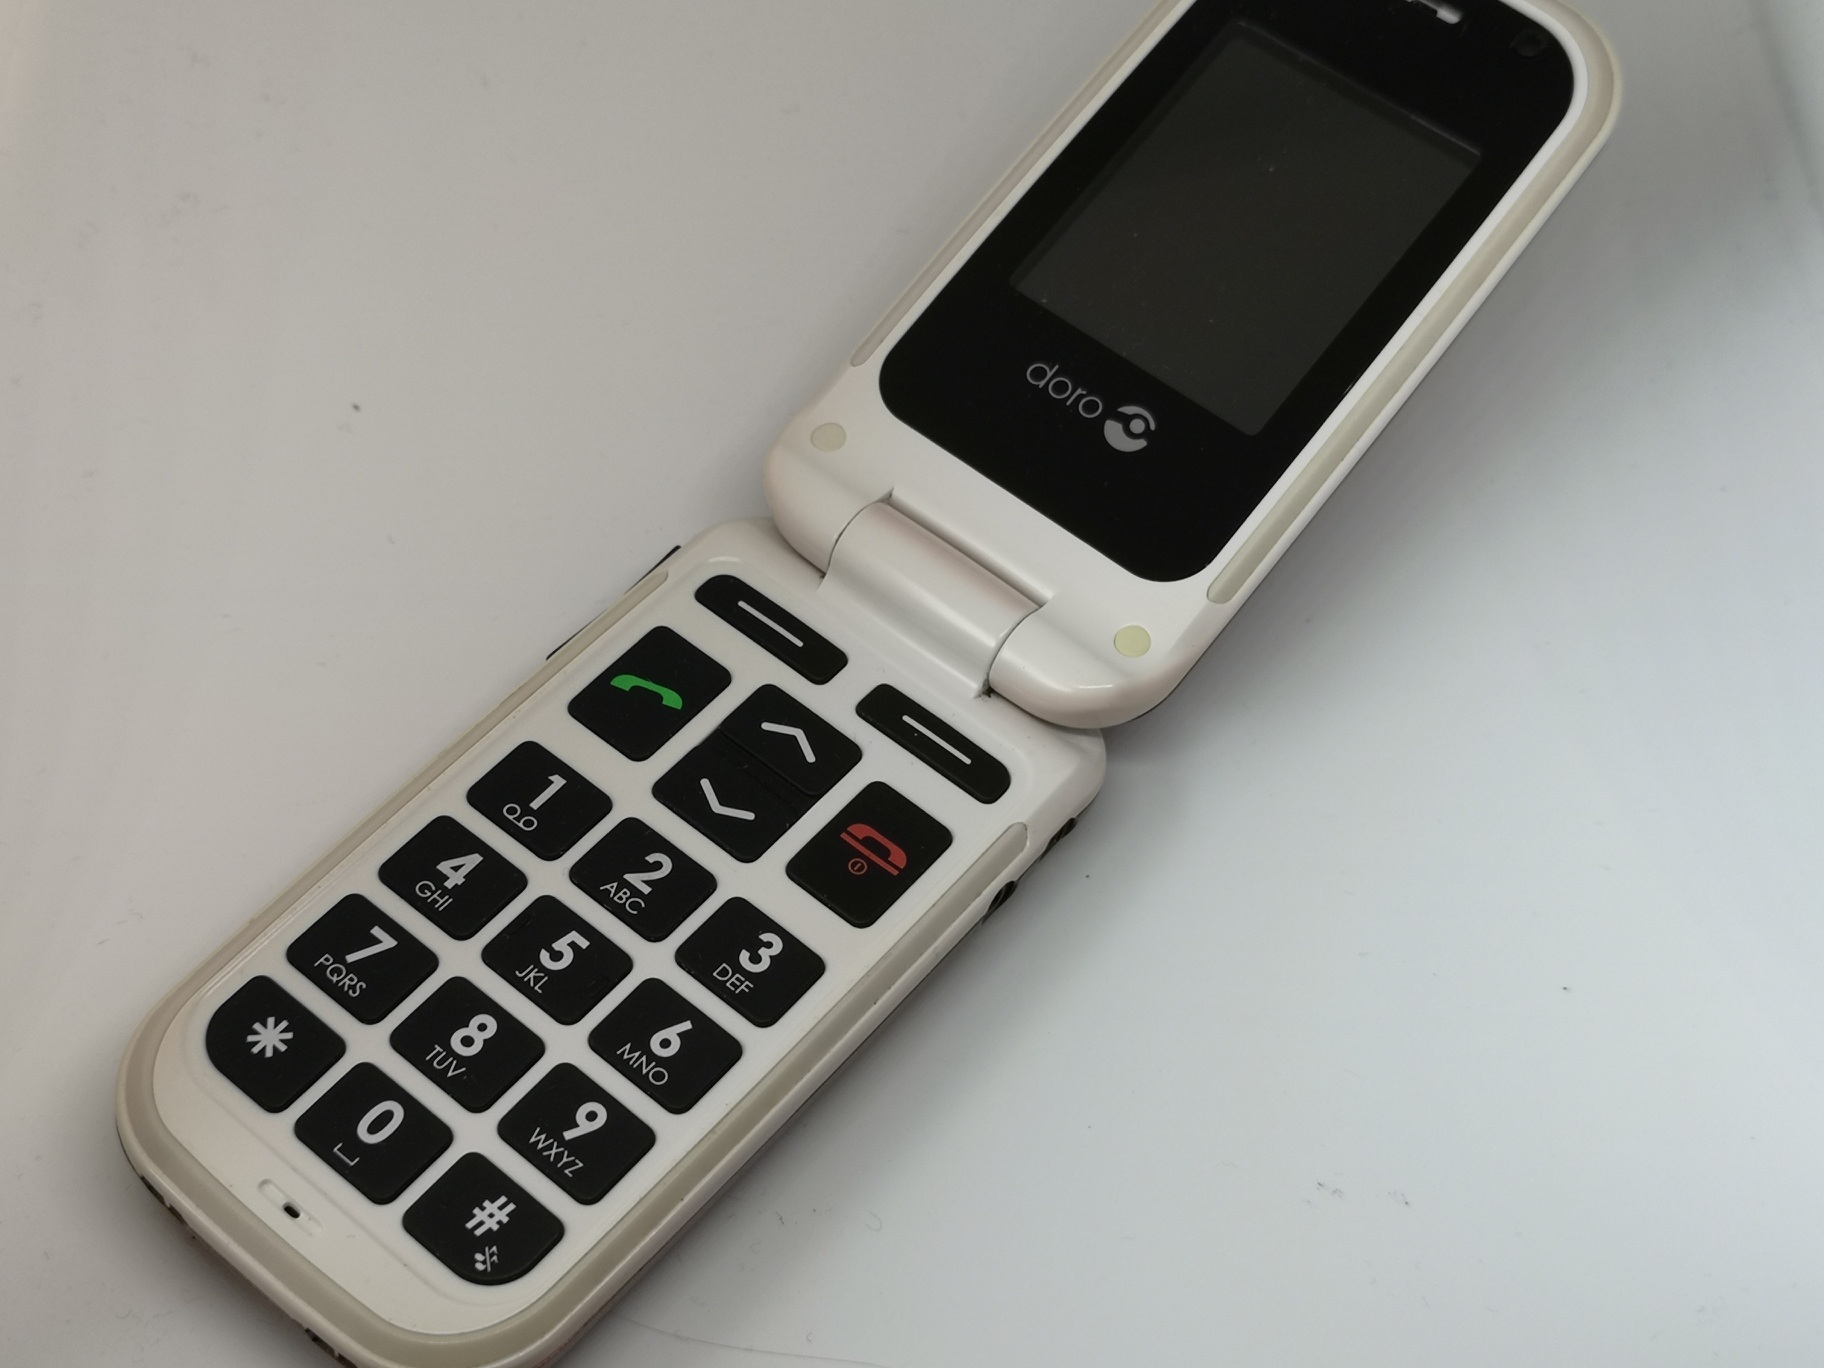 Doro PhoneEasy 410 Review - Flip Style, Big Buttoned Handset